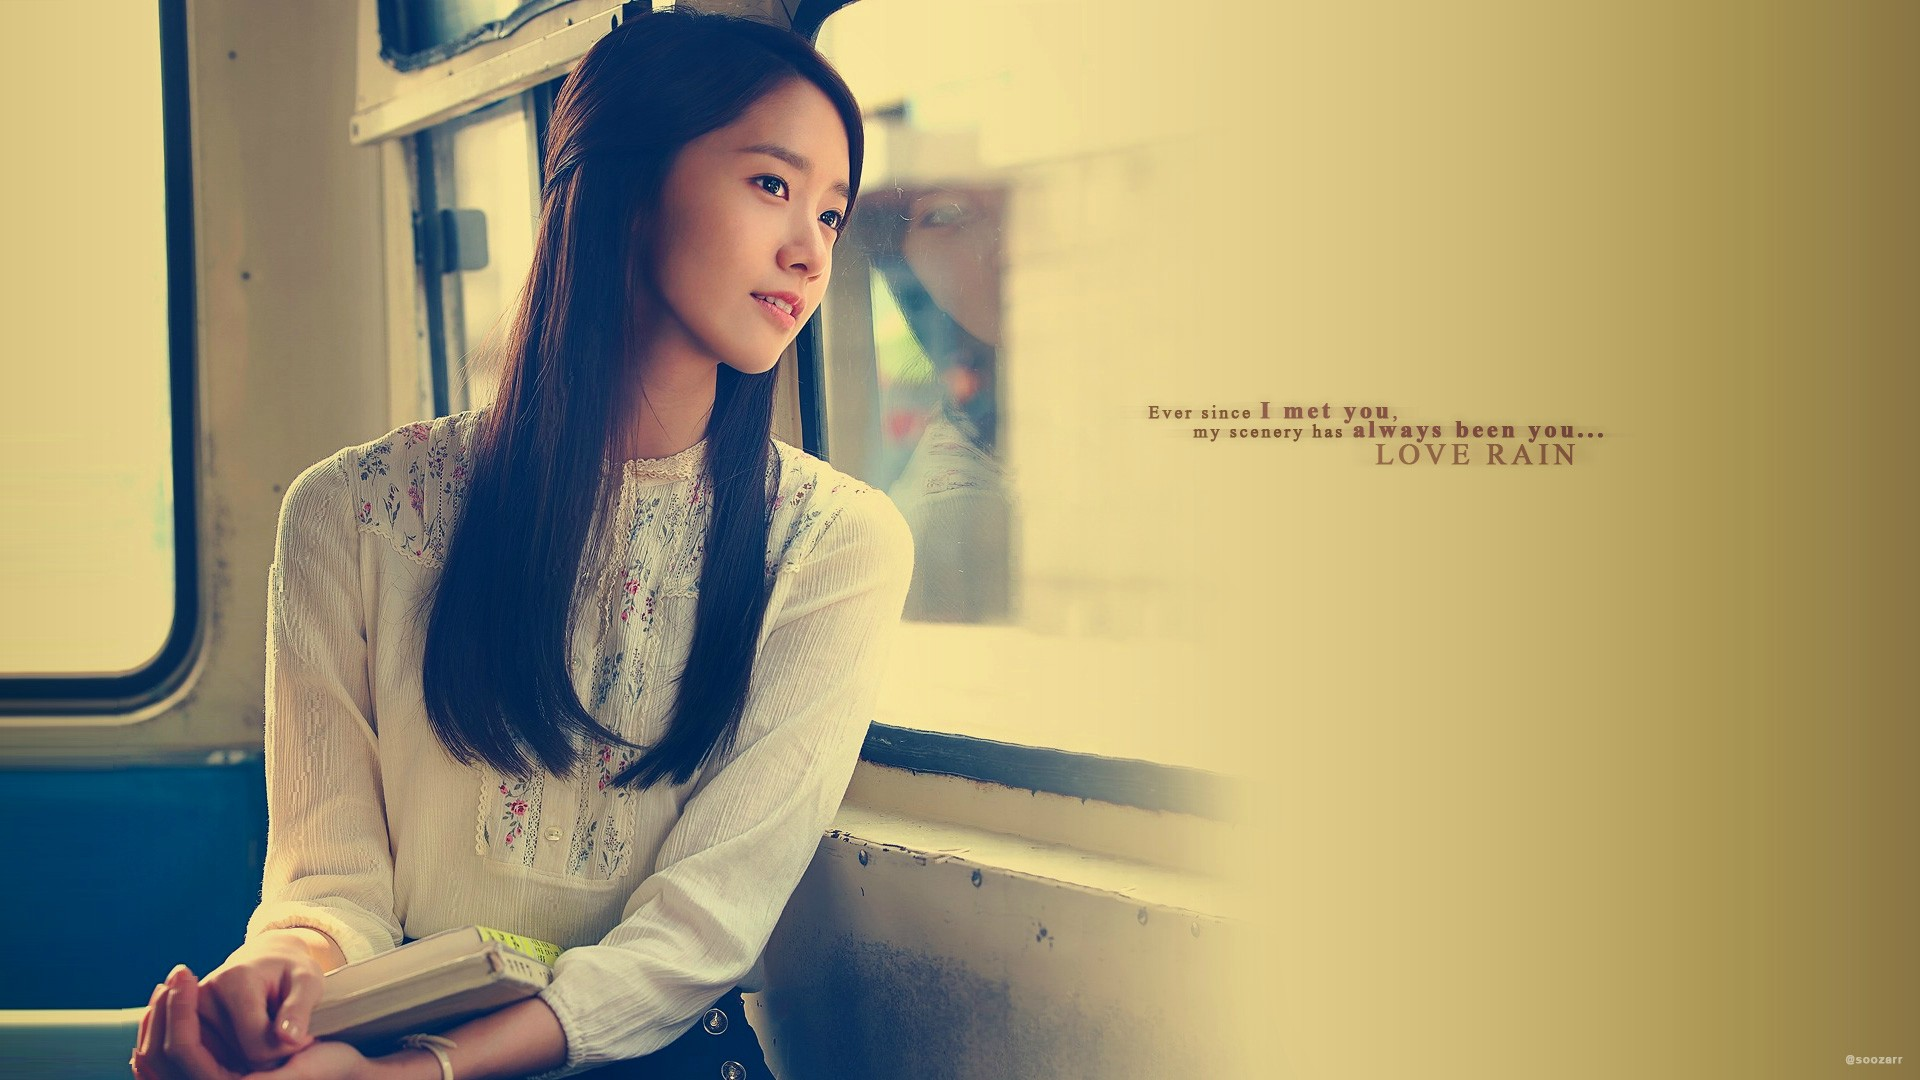 Love Rain Wallpaper Hd : Love Rain wallpaper 1920x1080 #8146